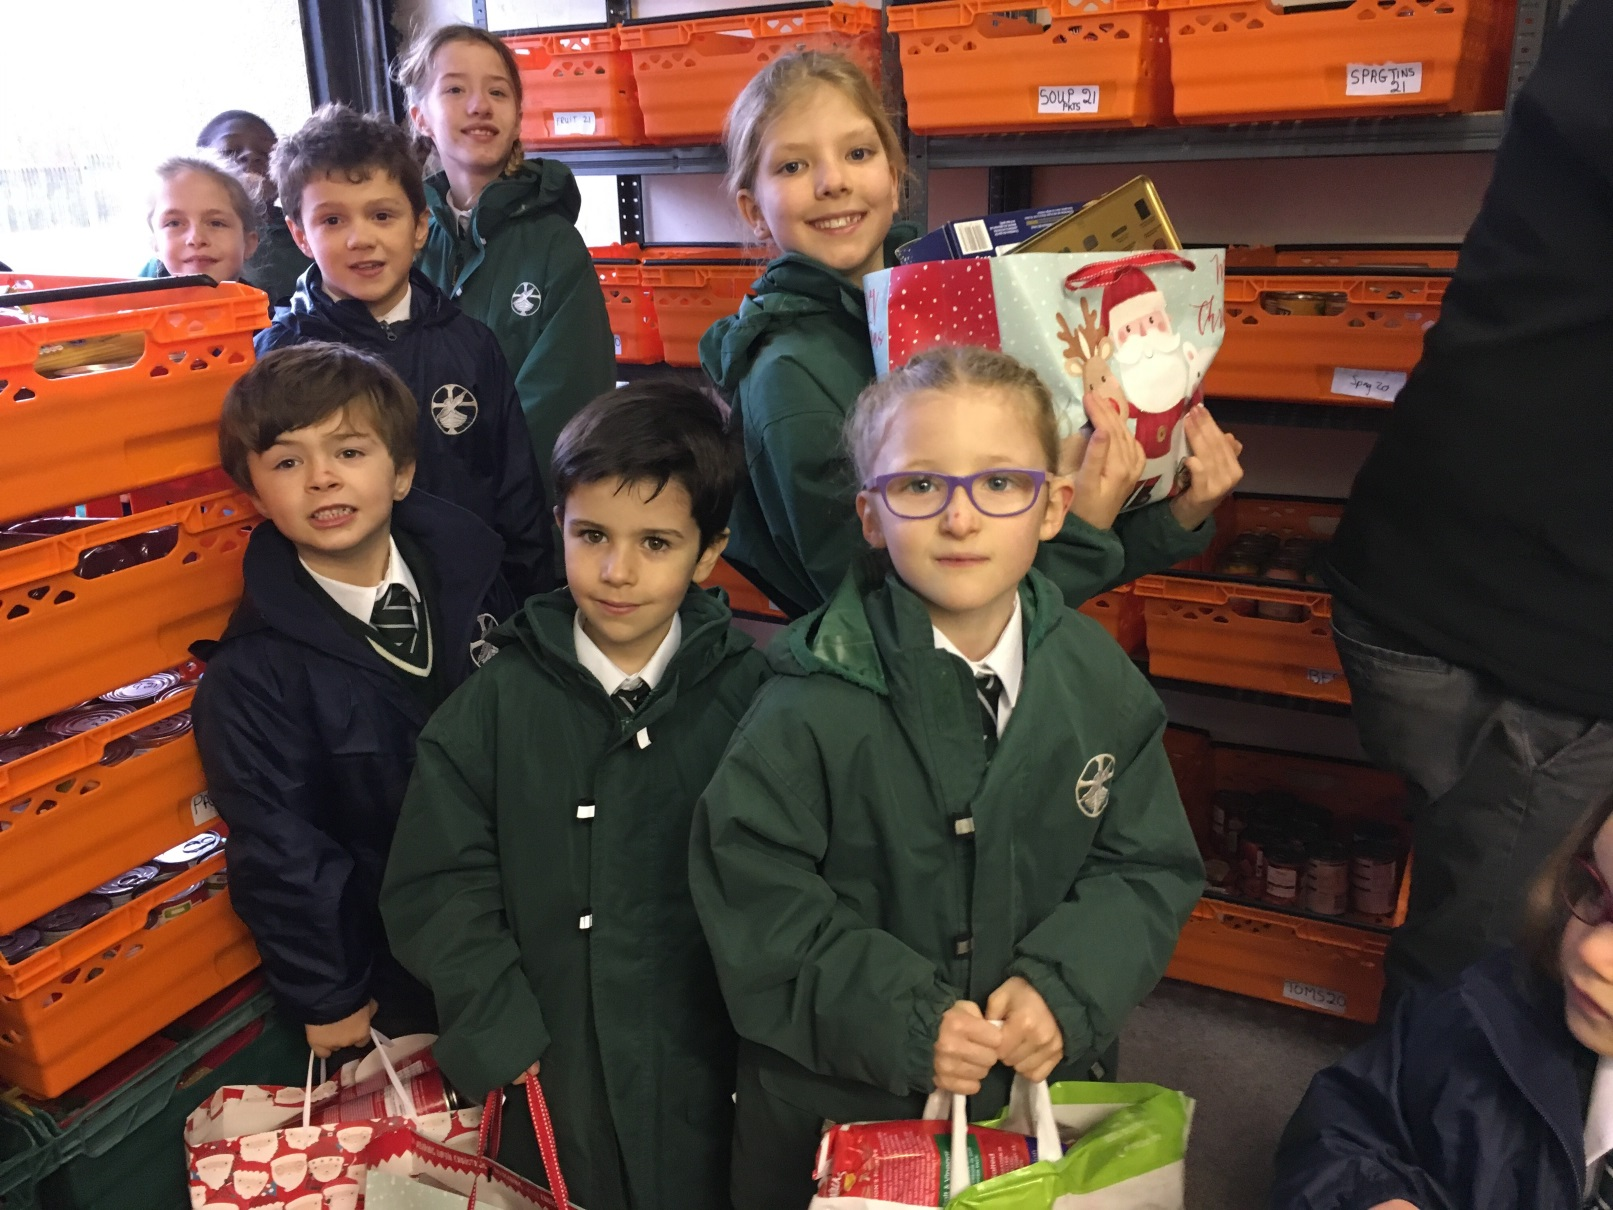 St Columba's continues to donate to Renfrewshire Foodbank